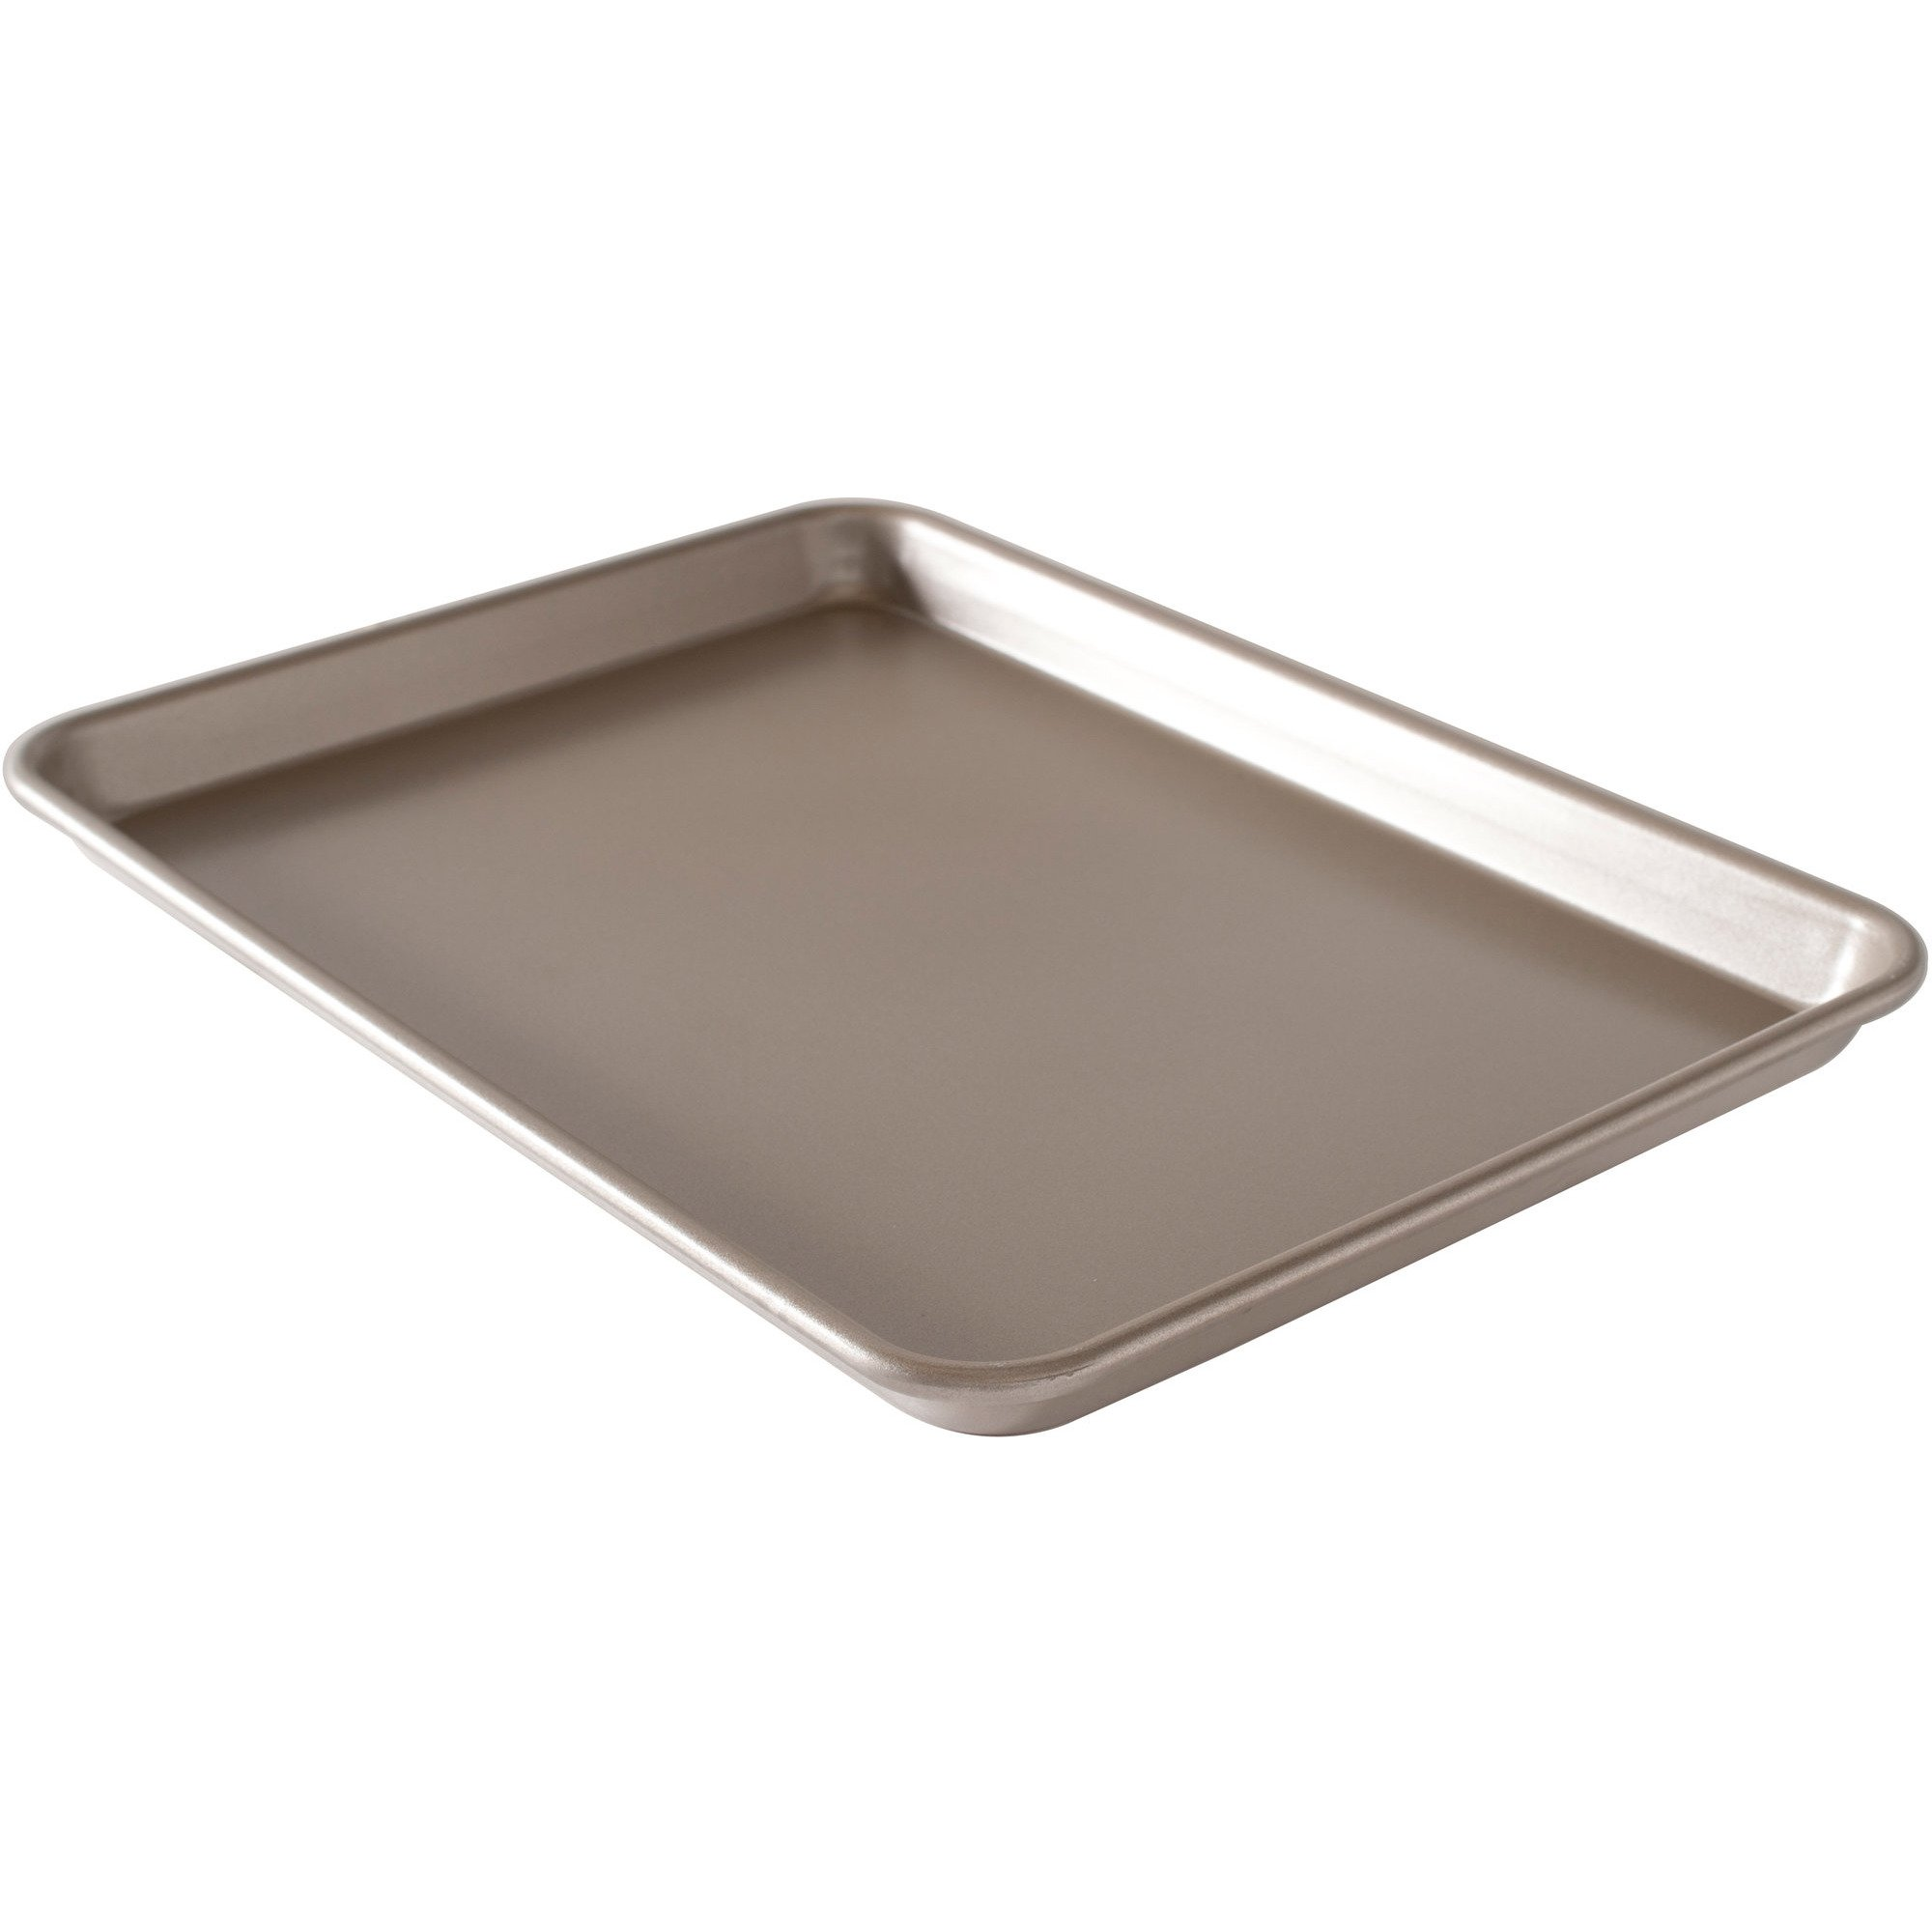 Nordic Ware Jelly Roll Pan 385 x 27 cm